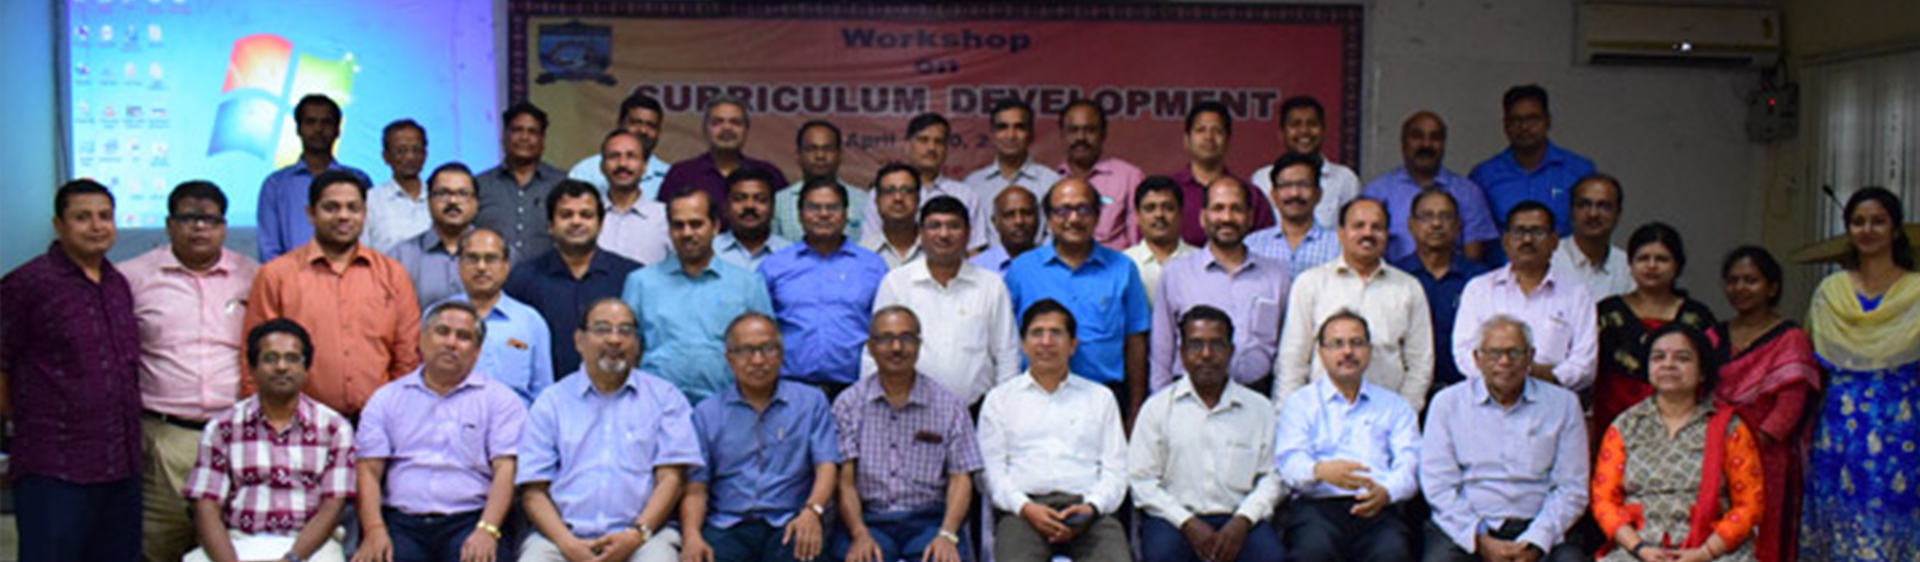 Workshop on Curriculum Development